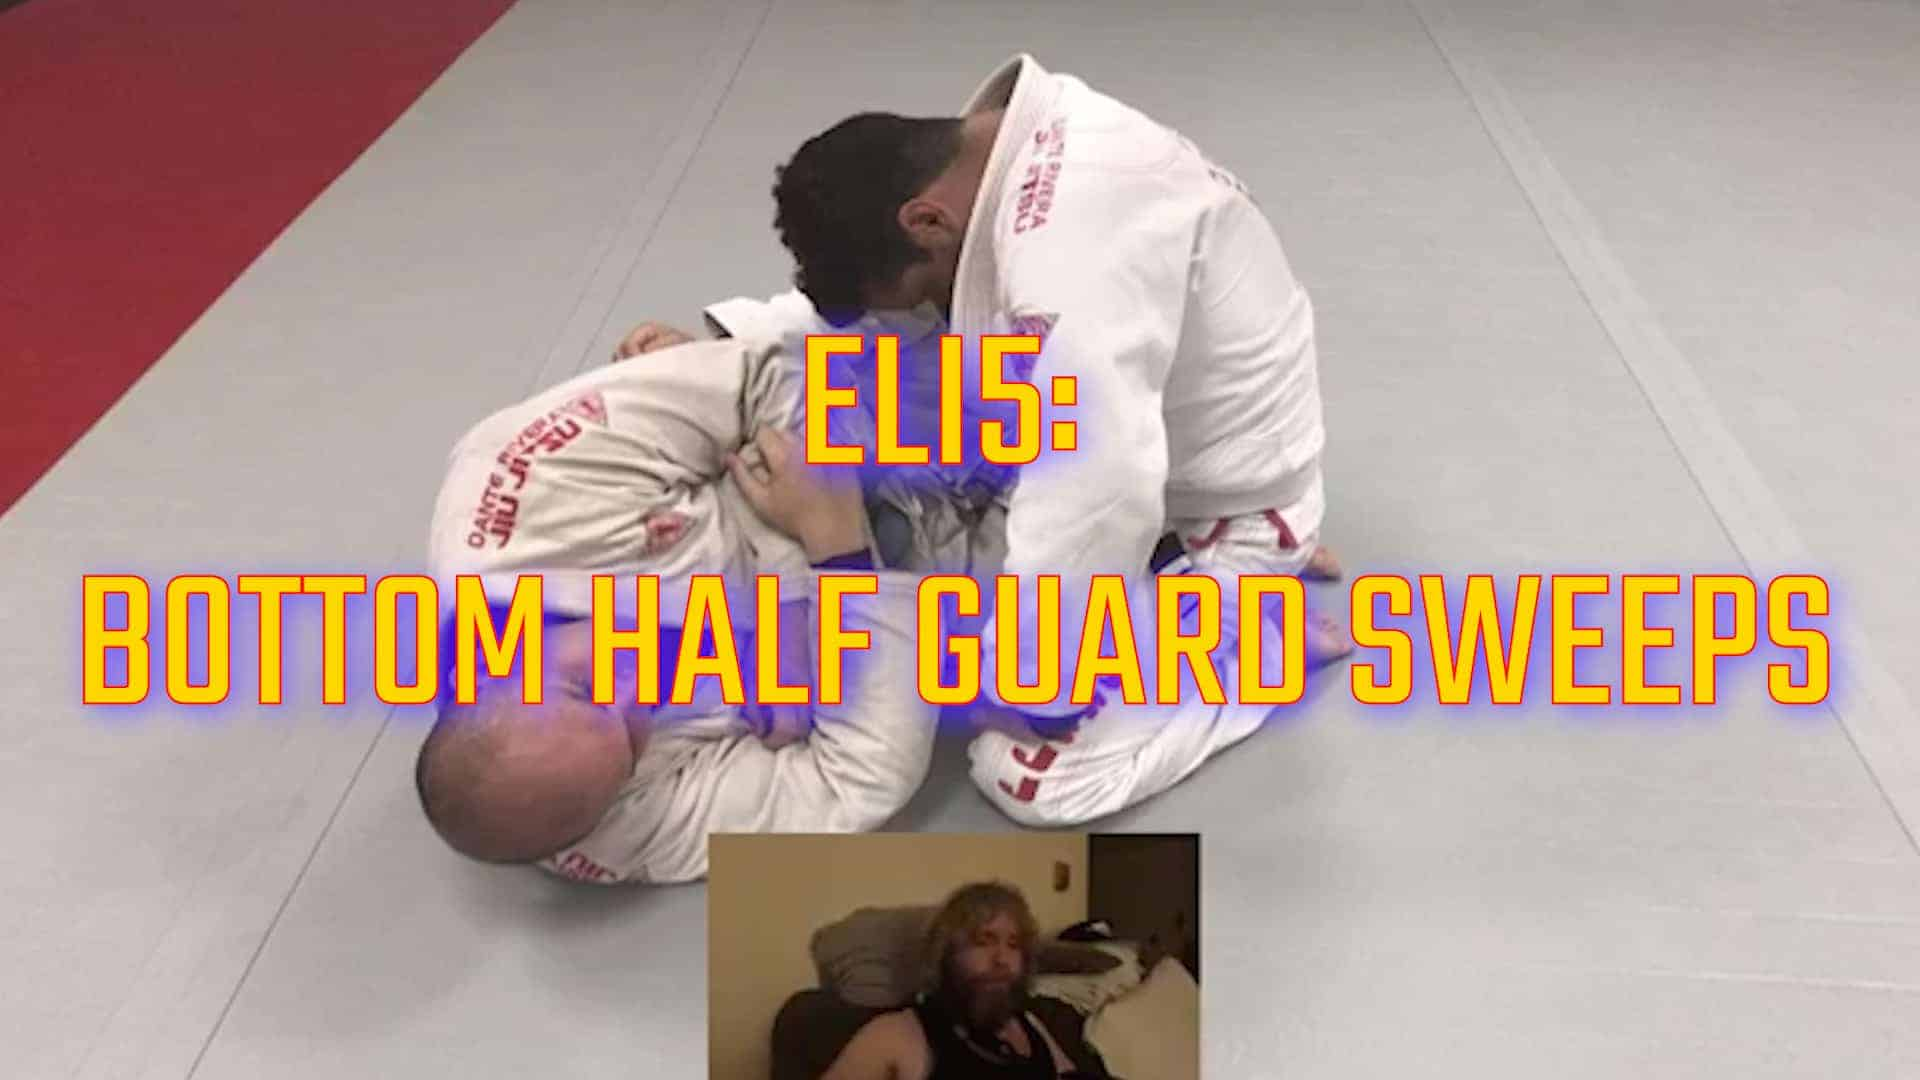 [VIDEO] ELI5: Bottom Half Guard Sweeps FB Live Discussion